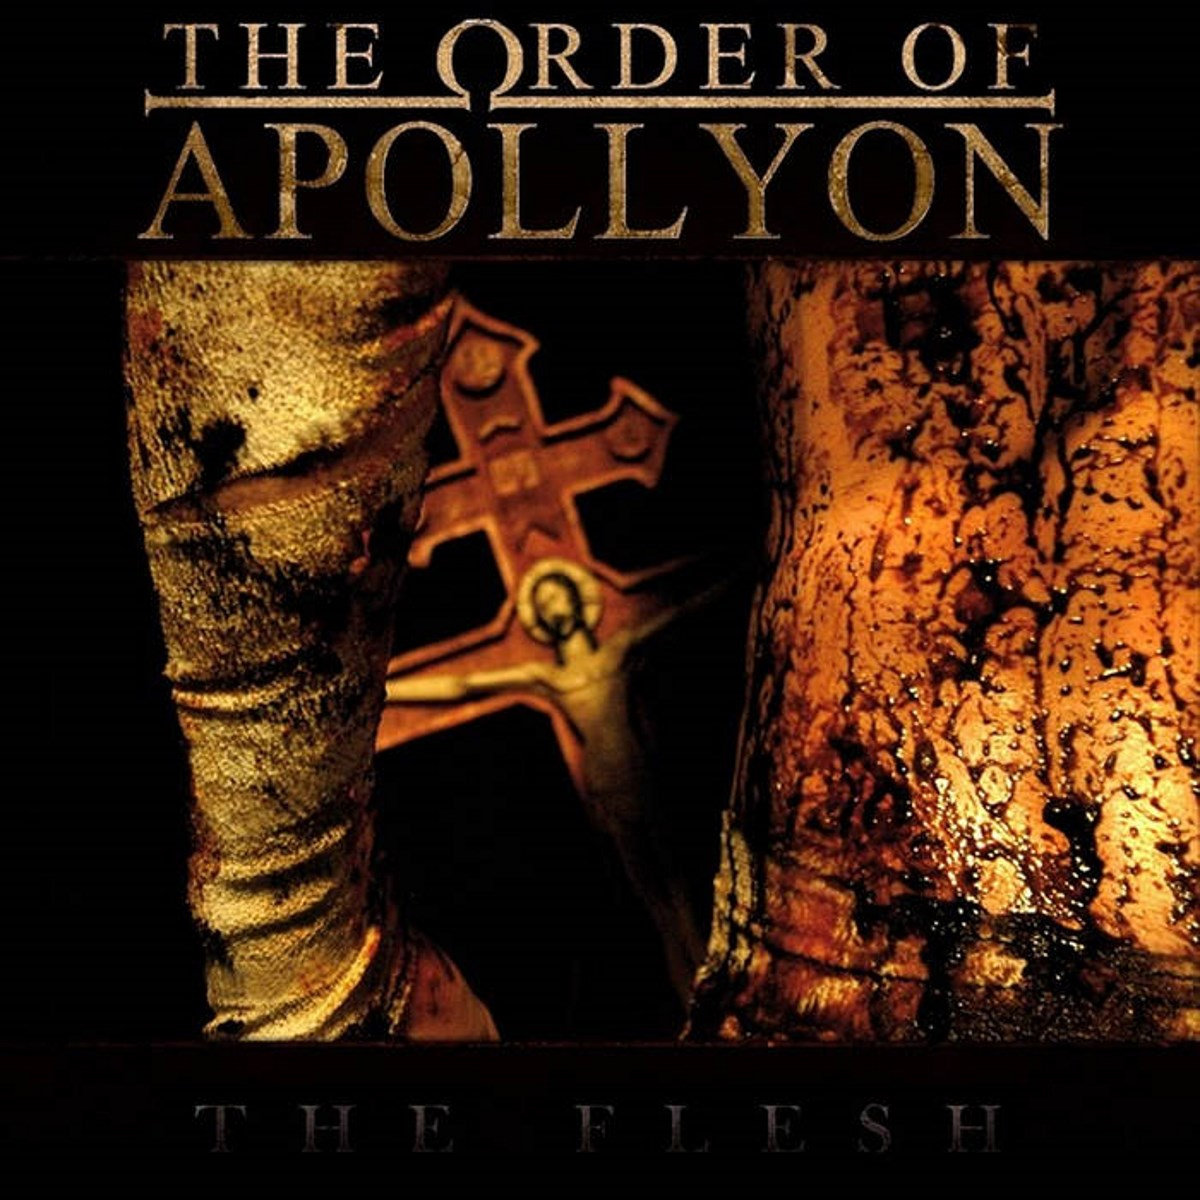 THE ORDER OF APOLLYON THE FLESH